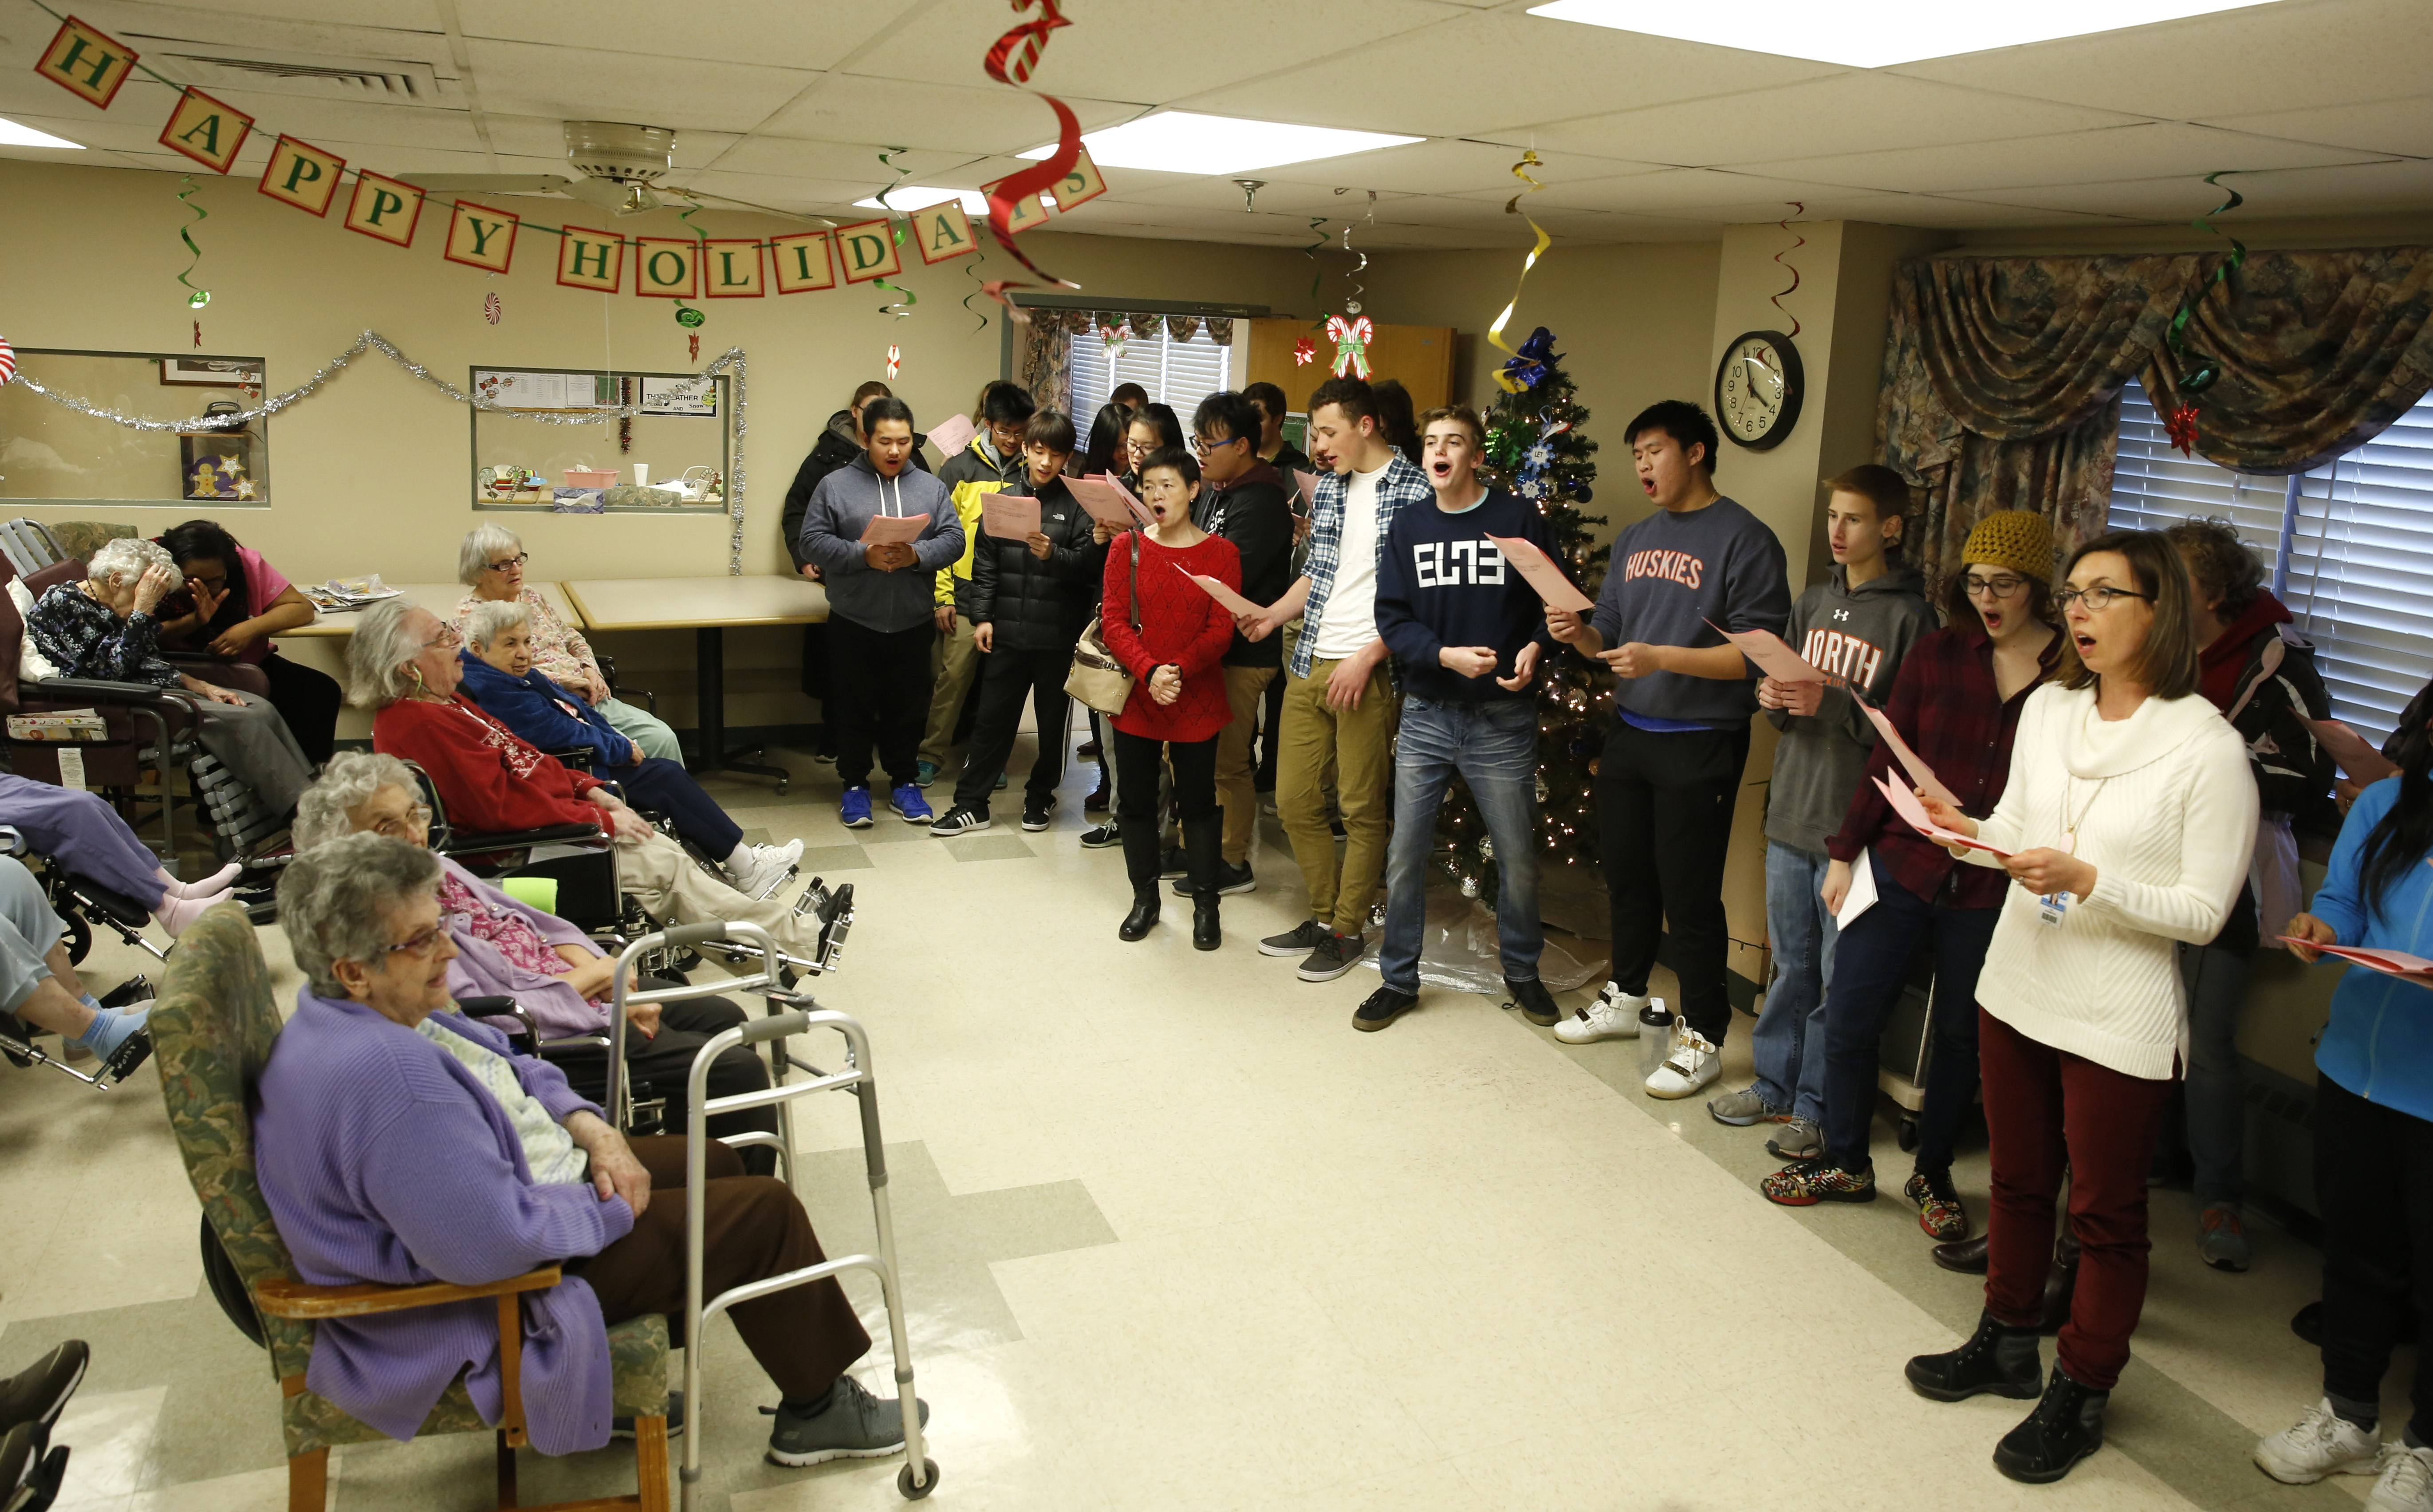 Naperville North students taking classes in foreign languages sing holiday carols in Latin, German, Chinese, Spanish, Italian and French to residents at Community Nursing and Rehab in Naperville.